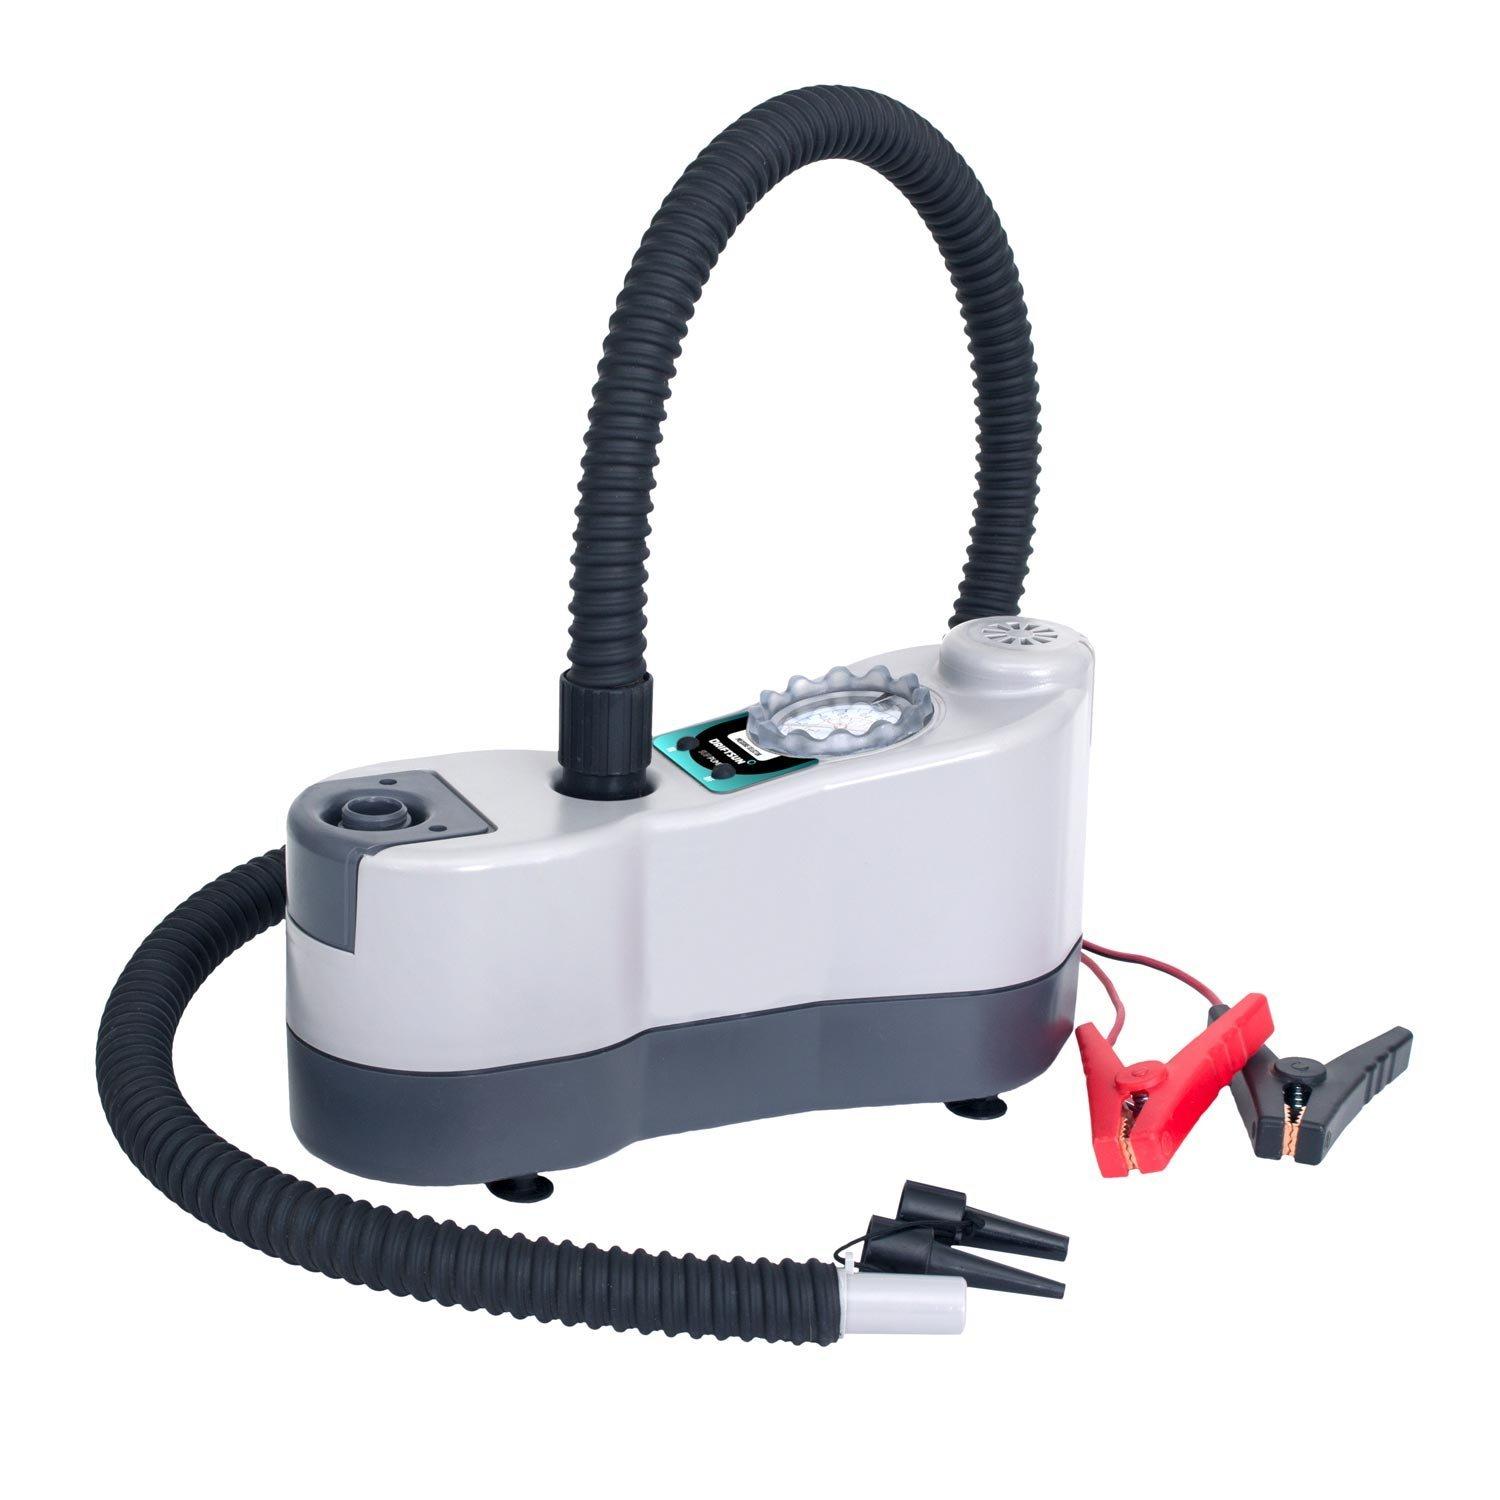 Driftsun High Pressure / High Volume Dual Stage Bravo Electric Pump for Inflatable SUPs, Kayaks, Towable's, Docks, and More